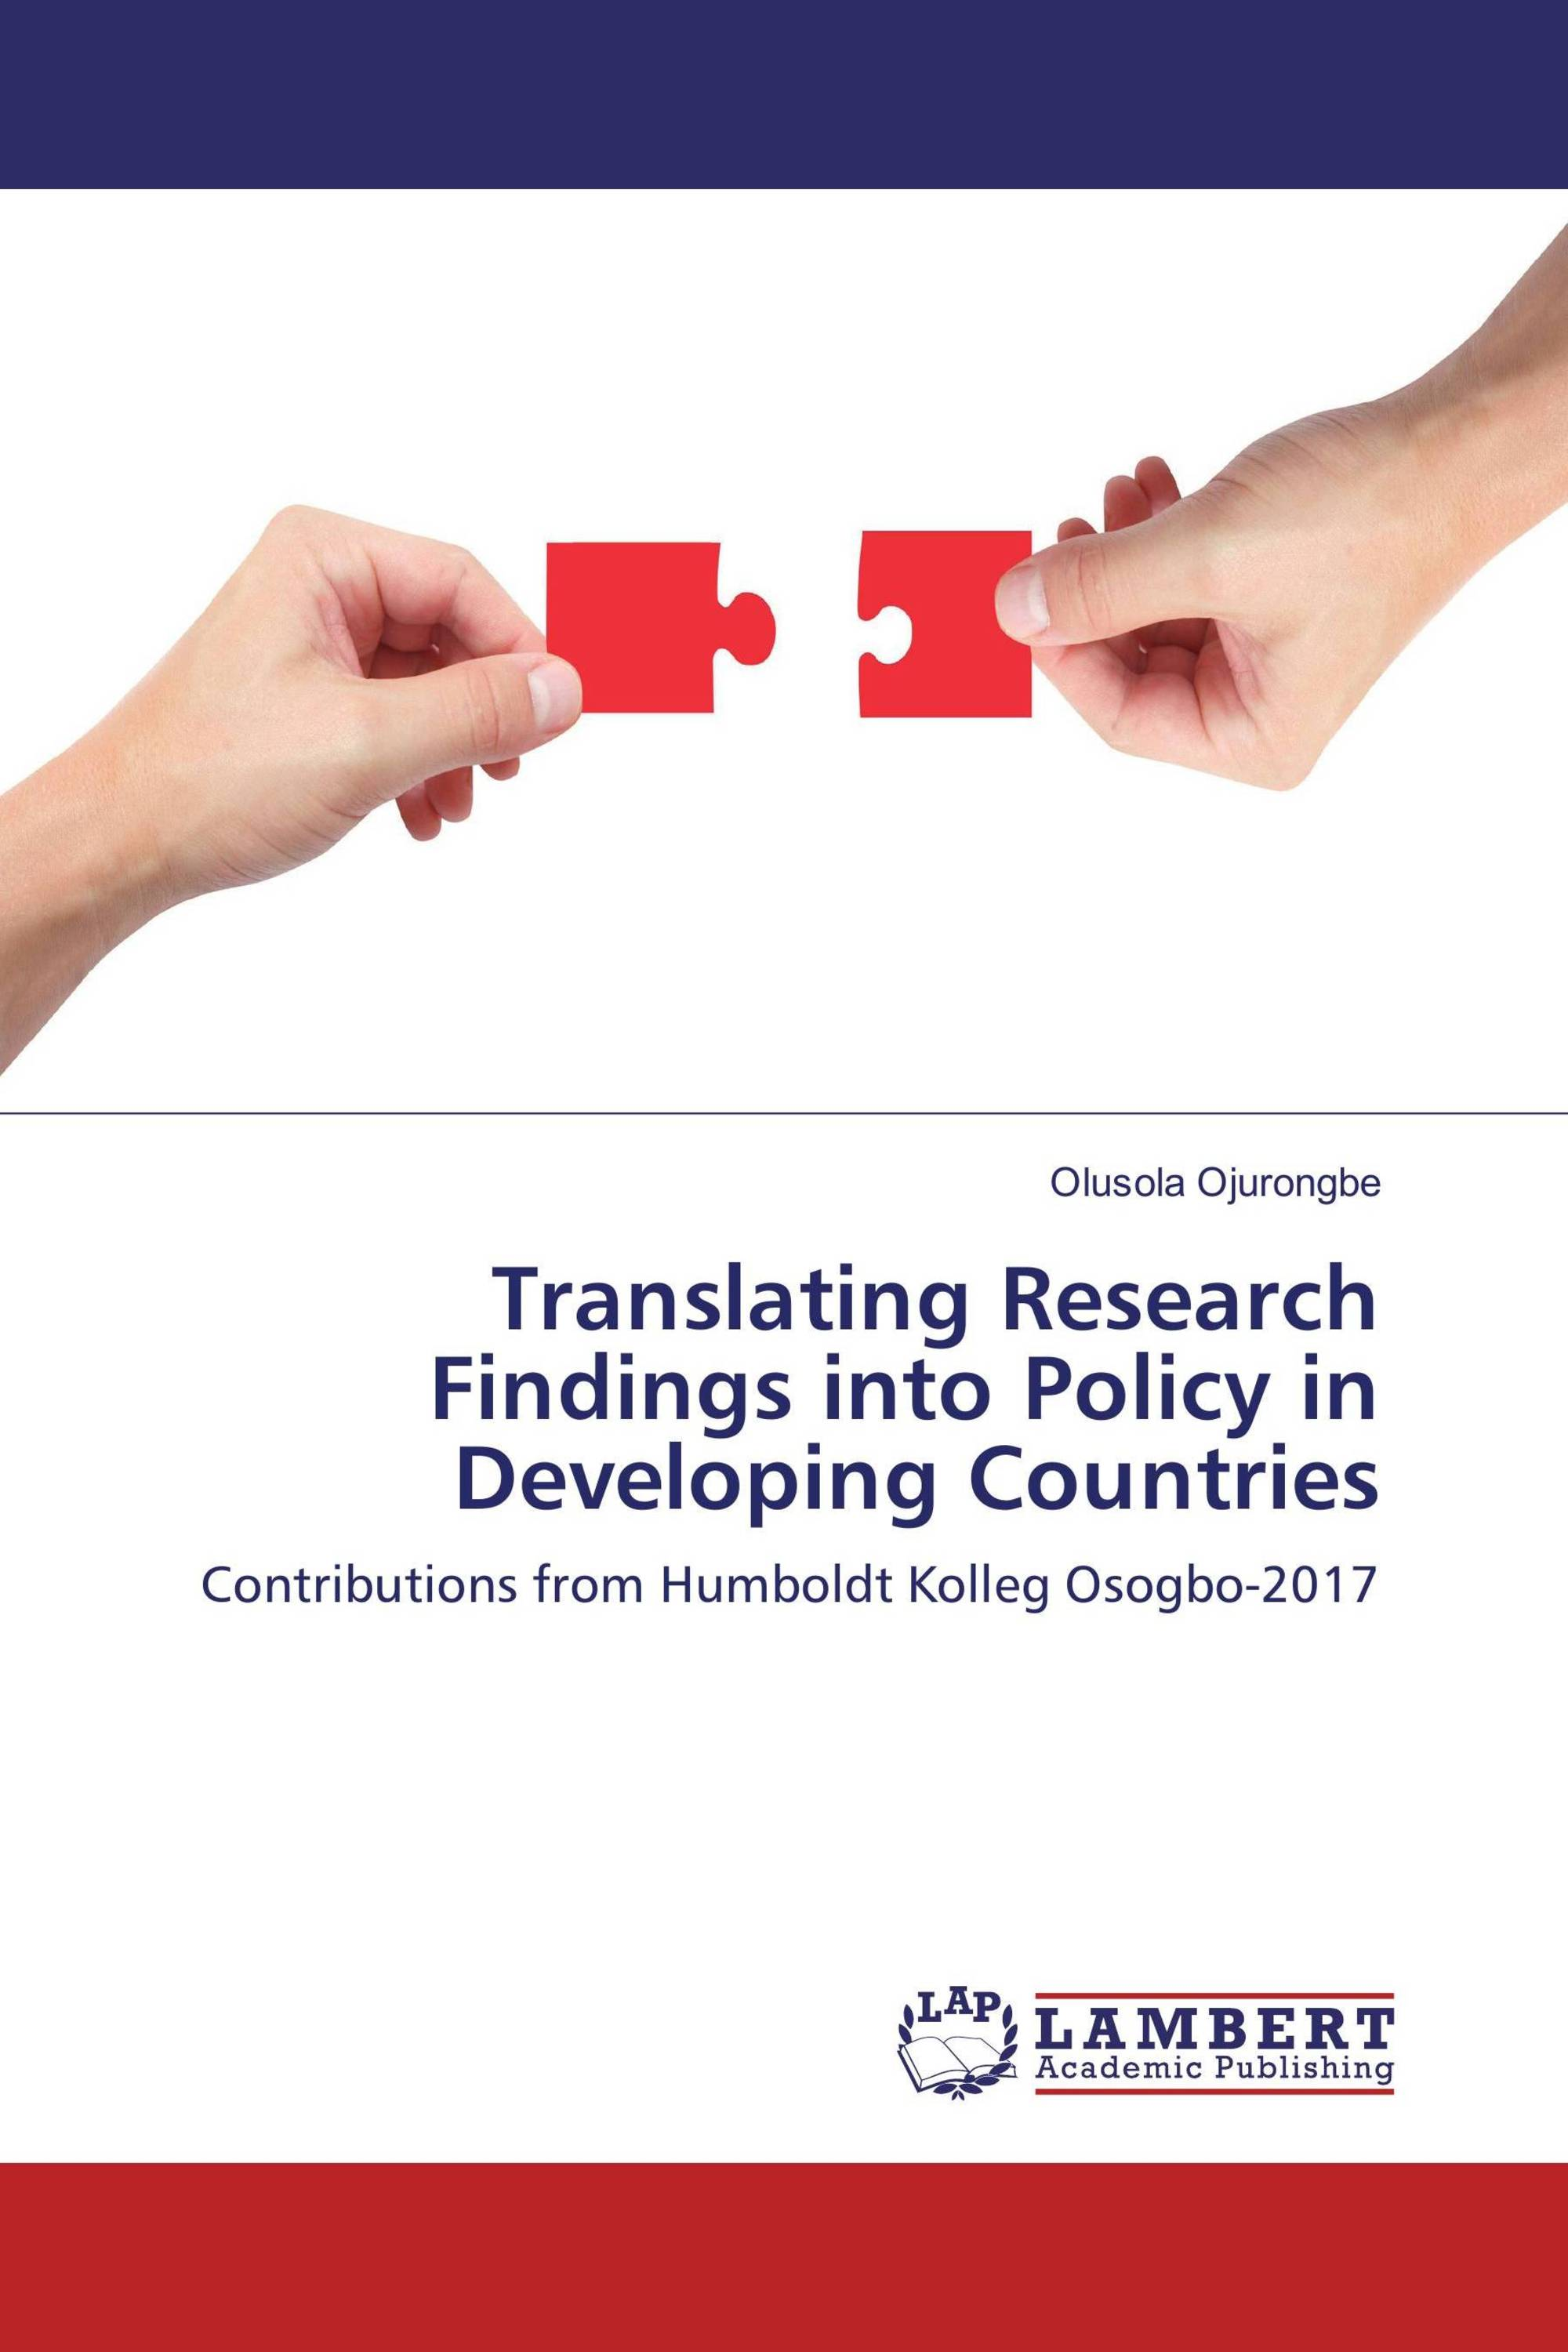 Translating Research Findings into Policy in Developing Countries